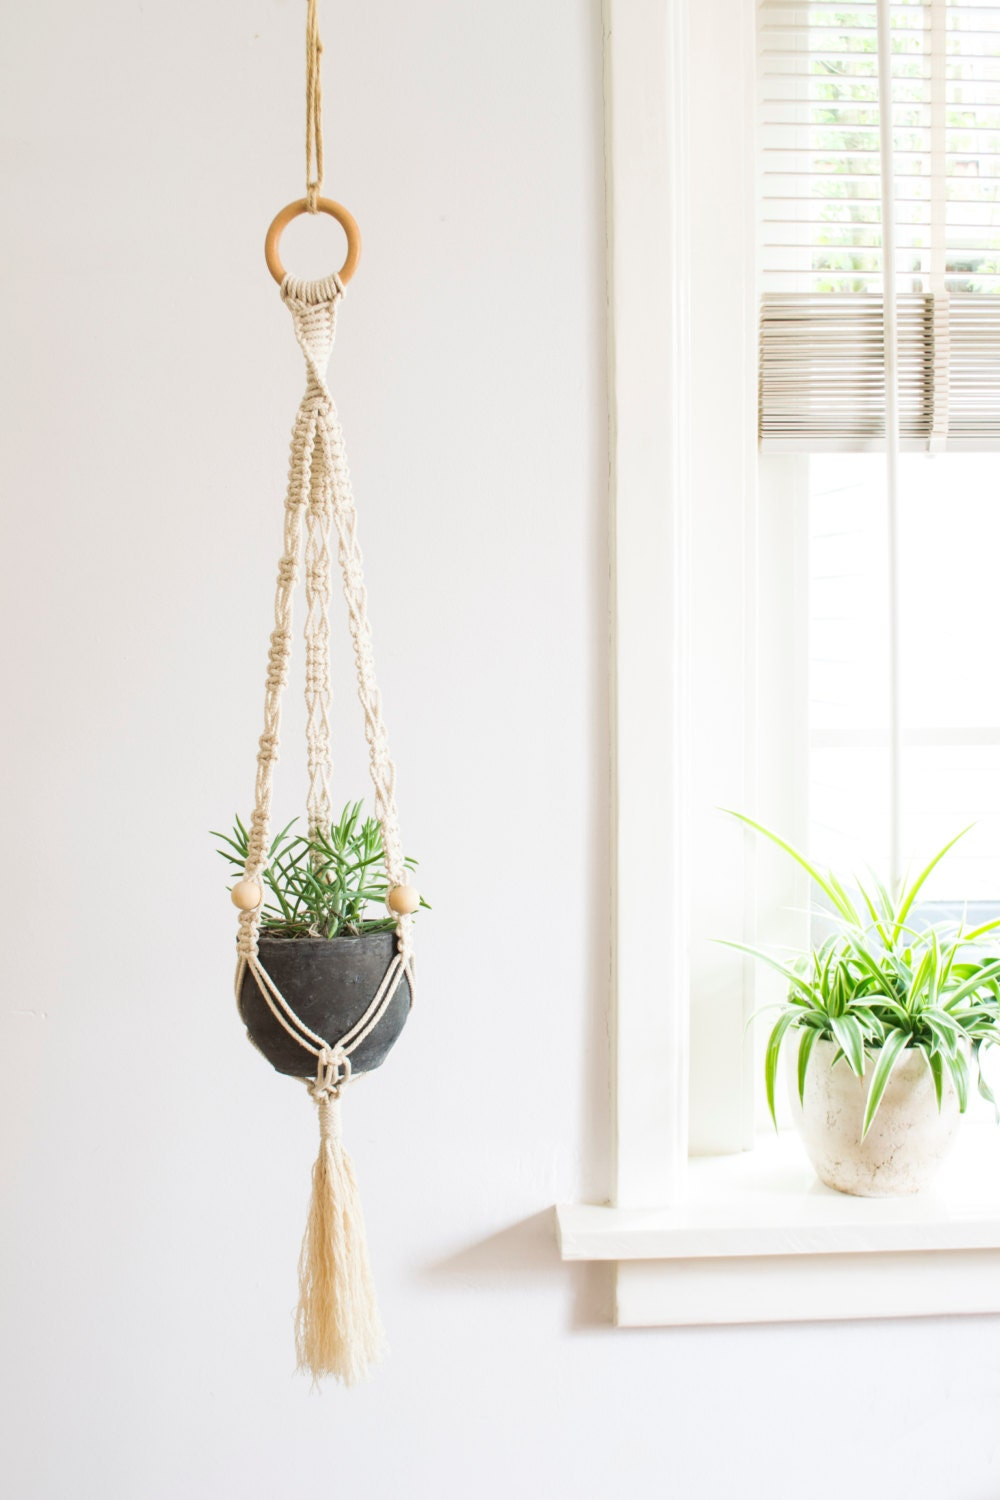 macrame plant hanger 32 inch 1 8 inch braided cotton cord. Black Bedroom Furniture Sets. Home Design Ideas